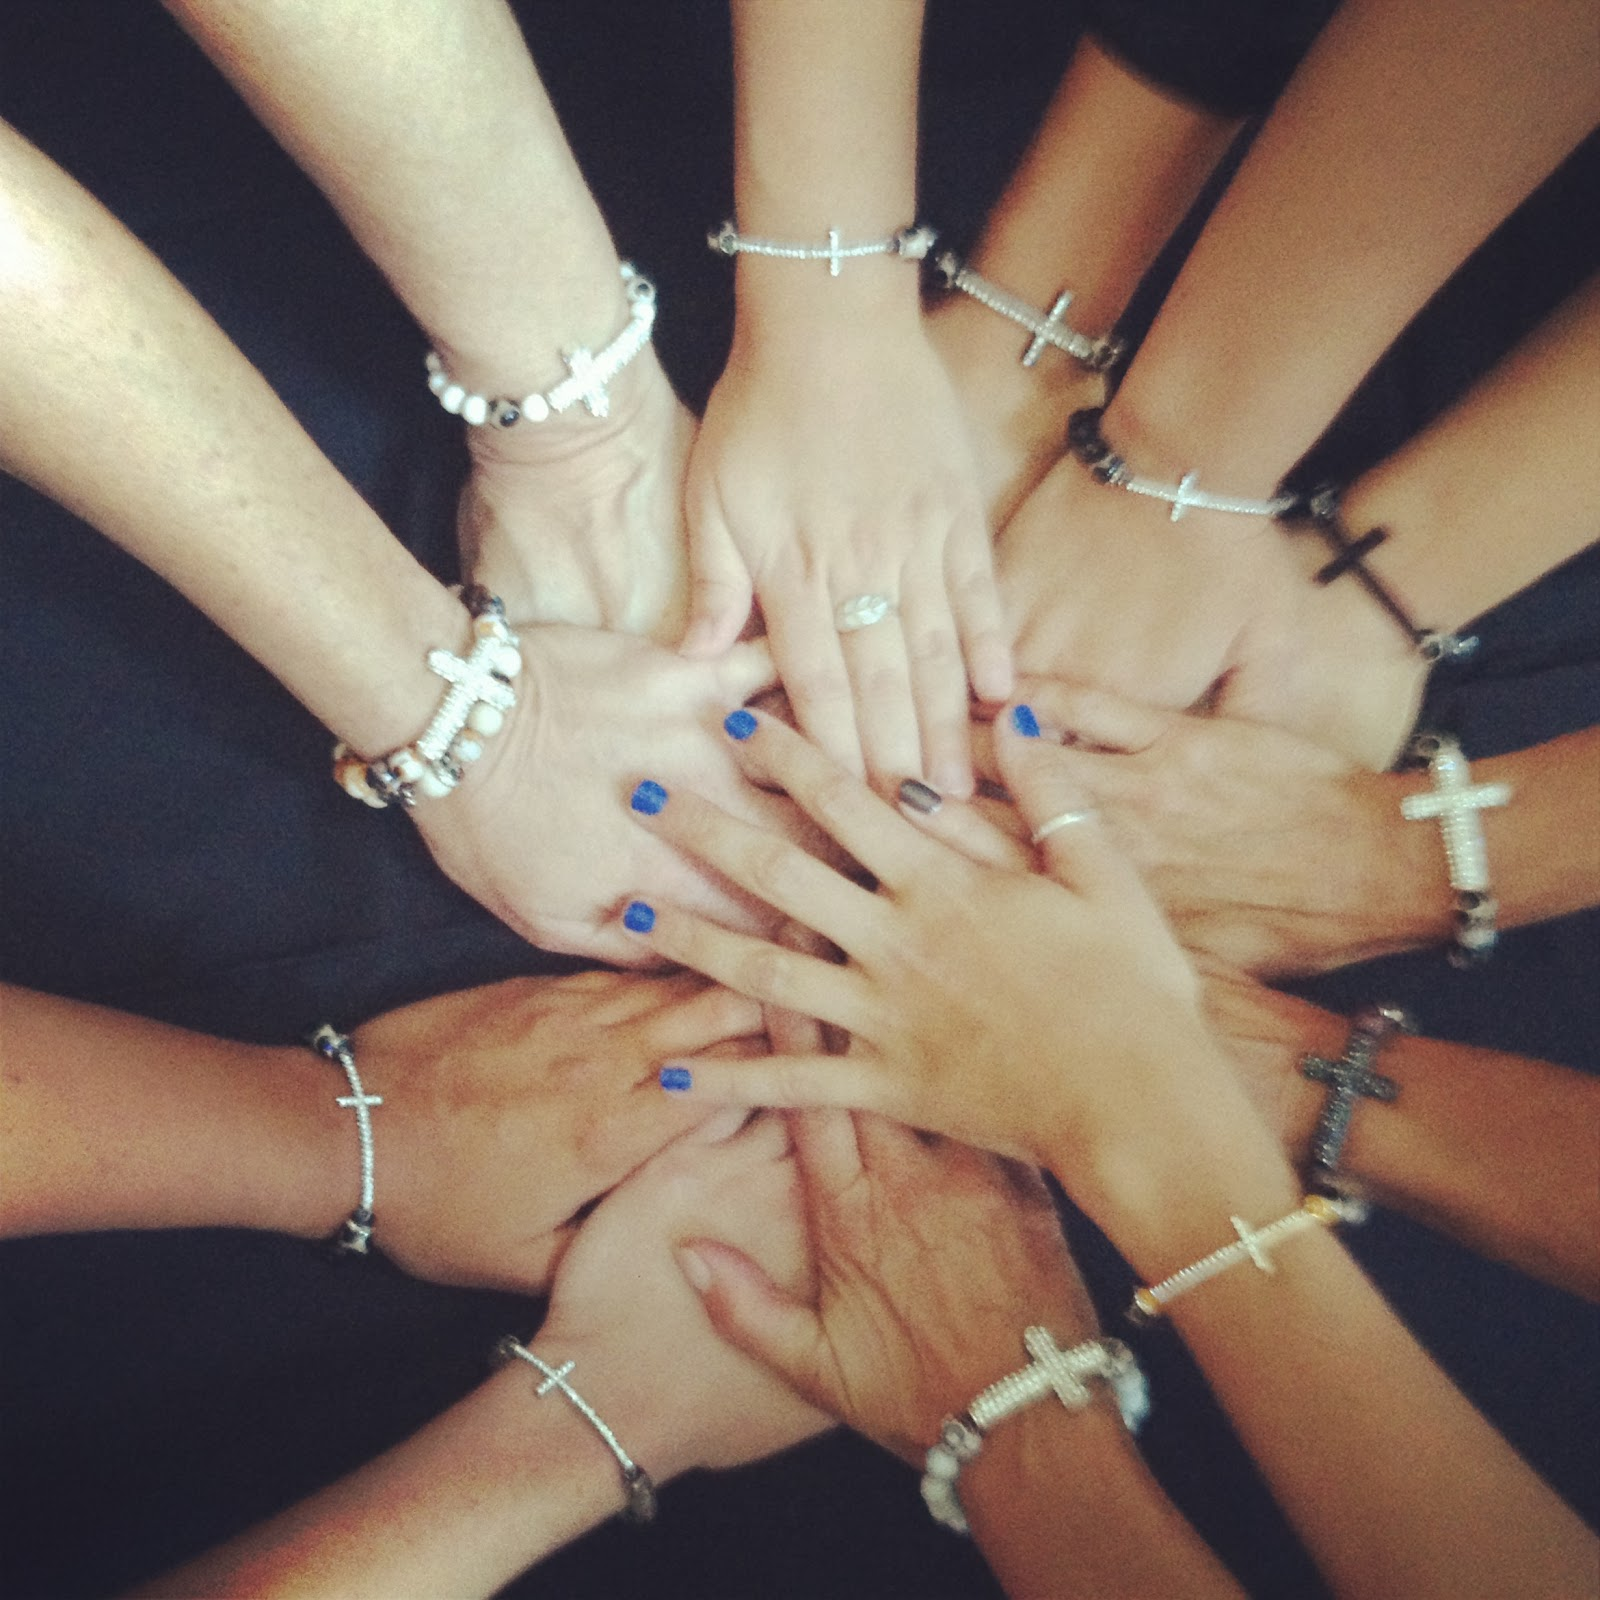 Kim Kirby Is My Consultant Who I From She Can Be Reached At 937 829 9518 Will Also Make Custom Bracelets For